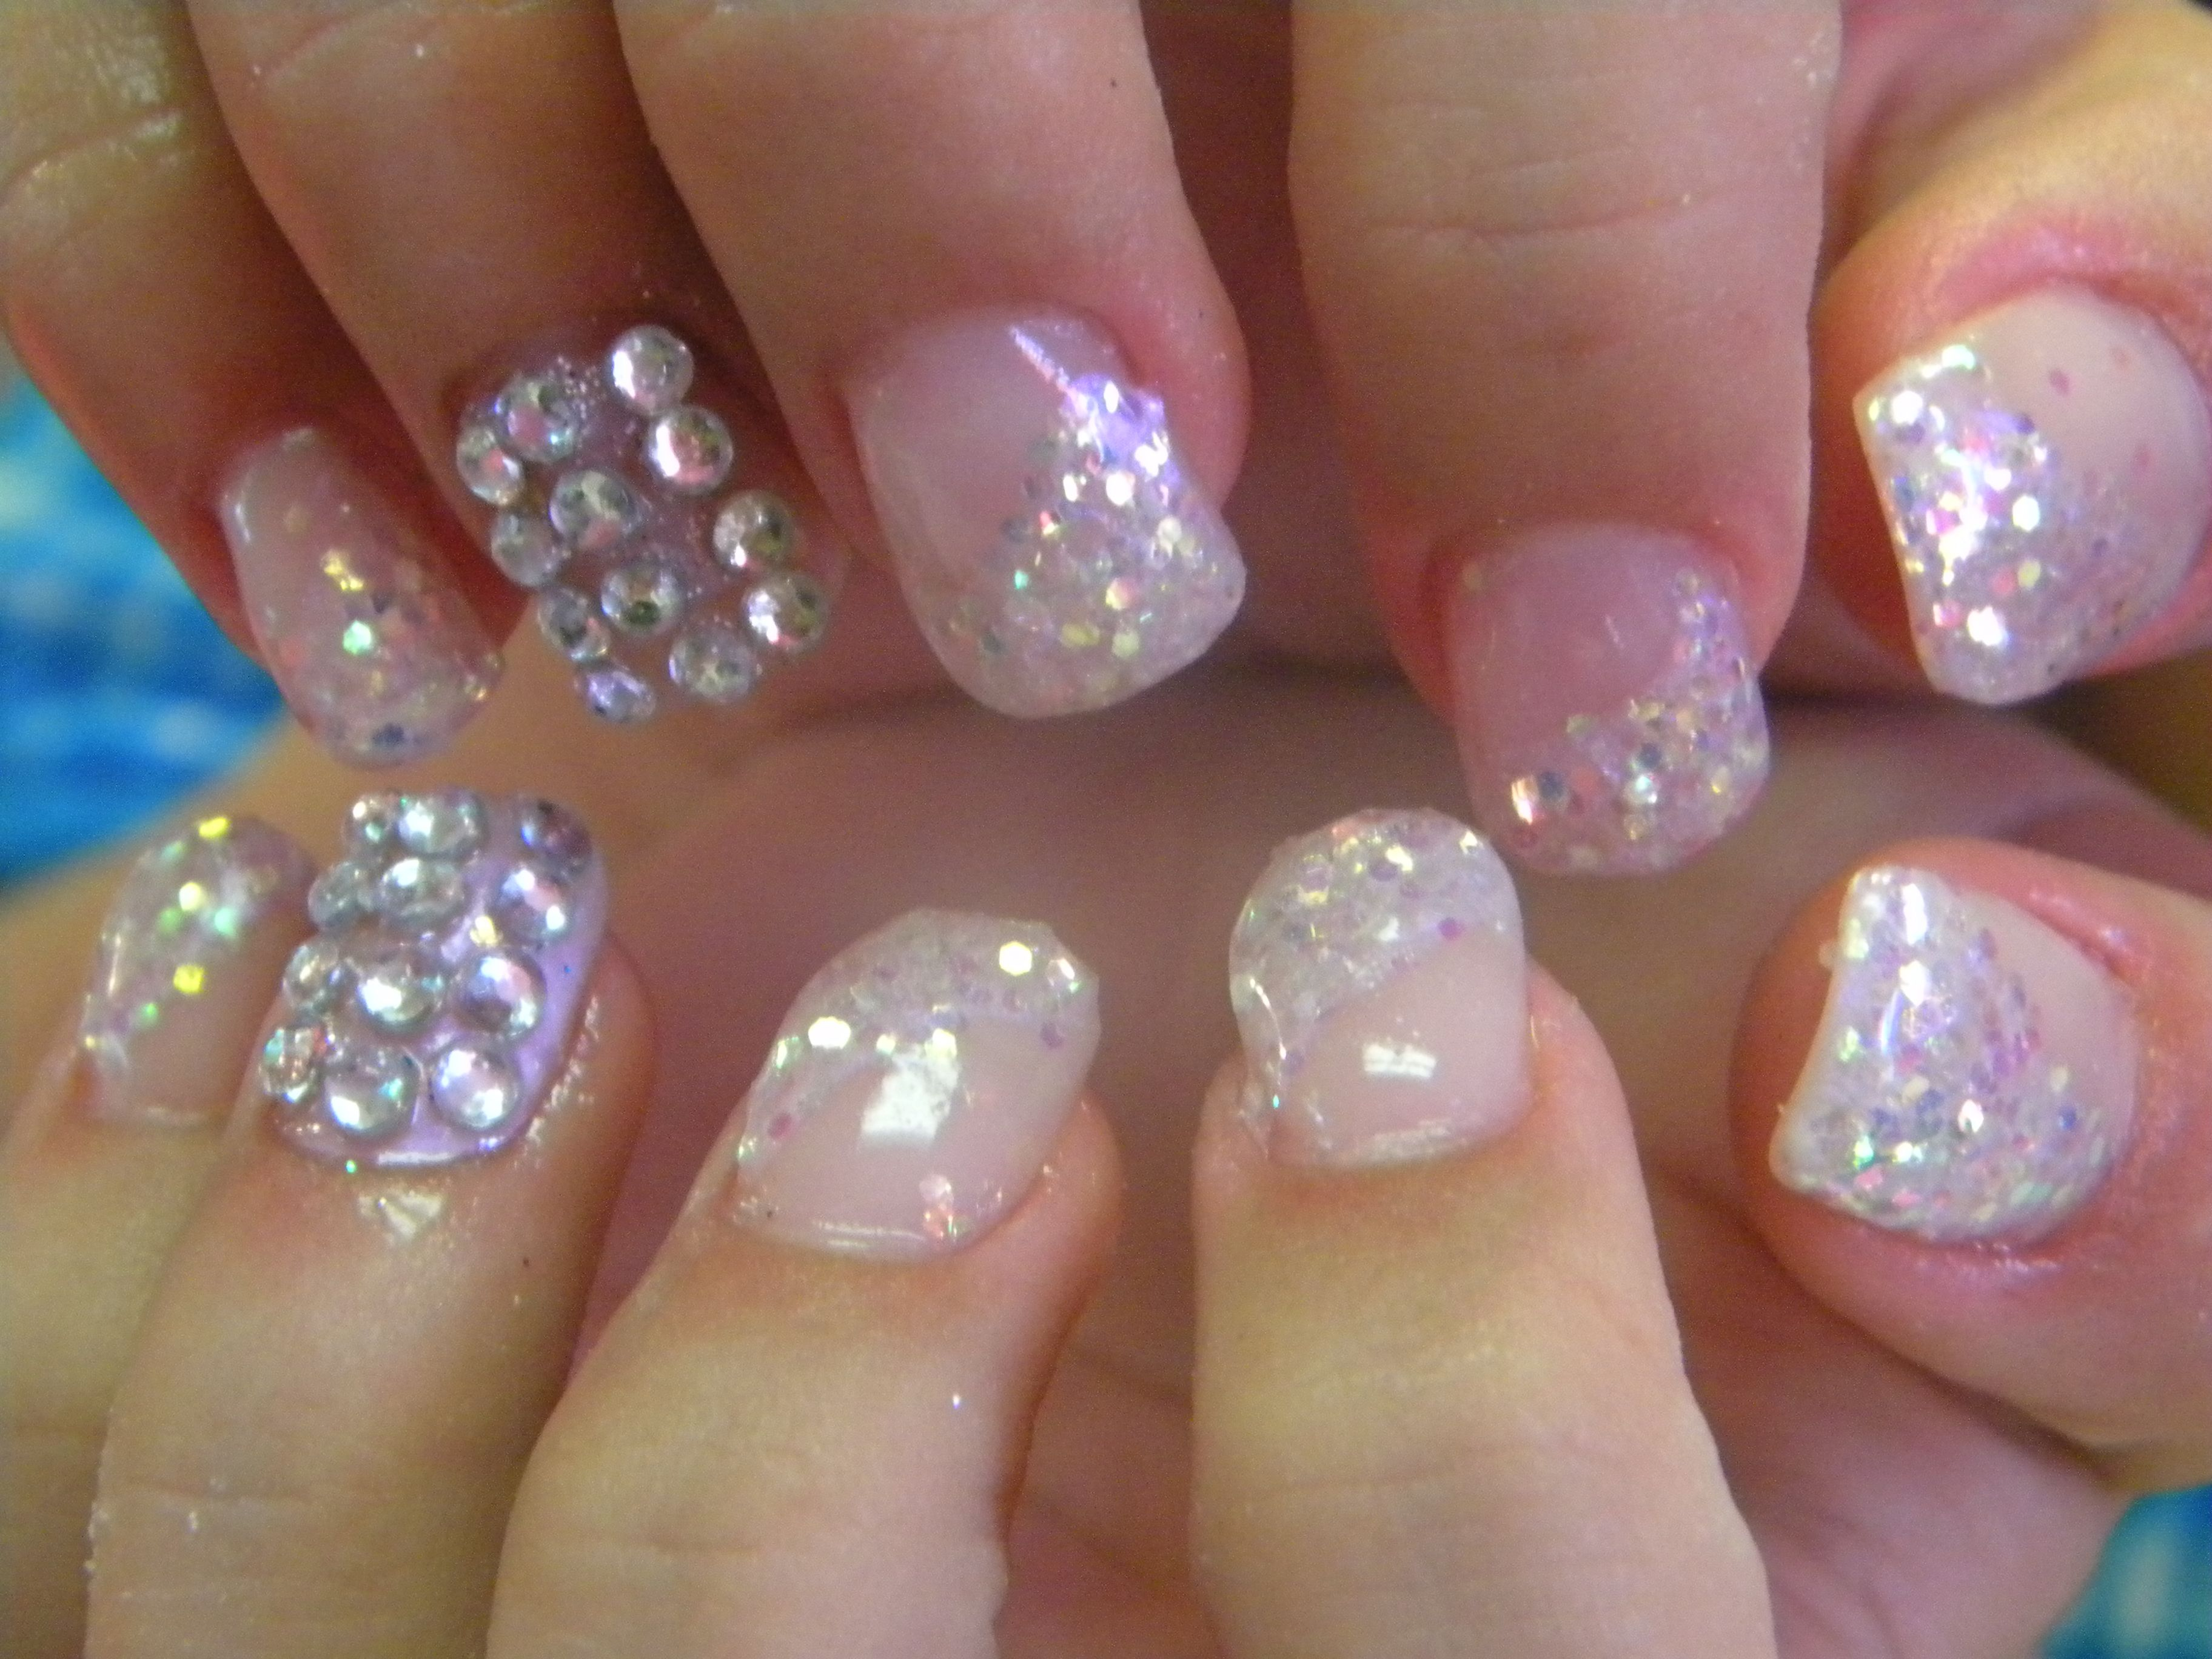 Nails for prom! Awesome! | The Prom Shop - Nail Ideas Prom 2017 ...